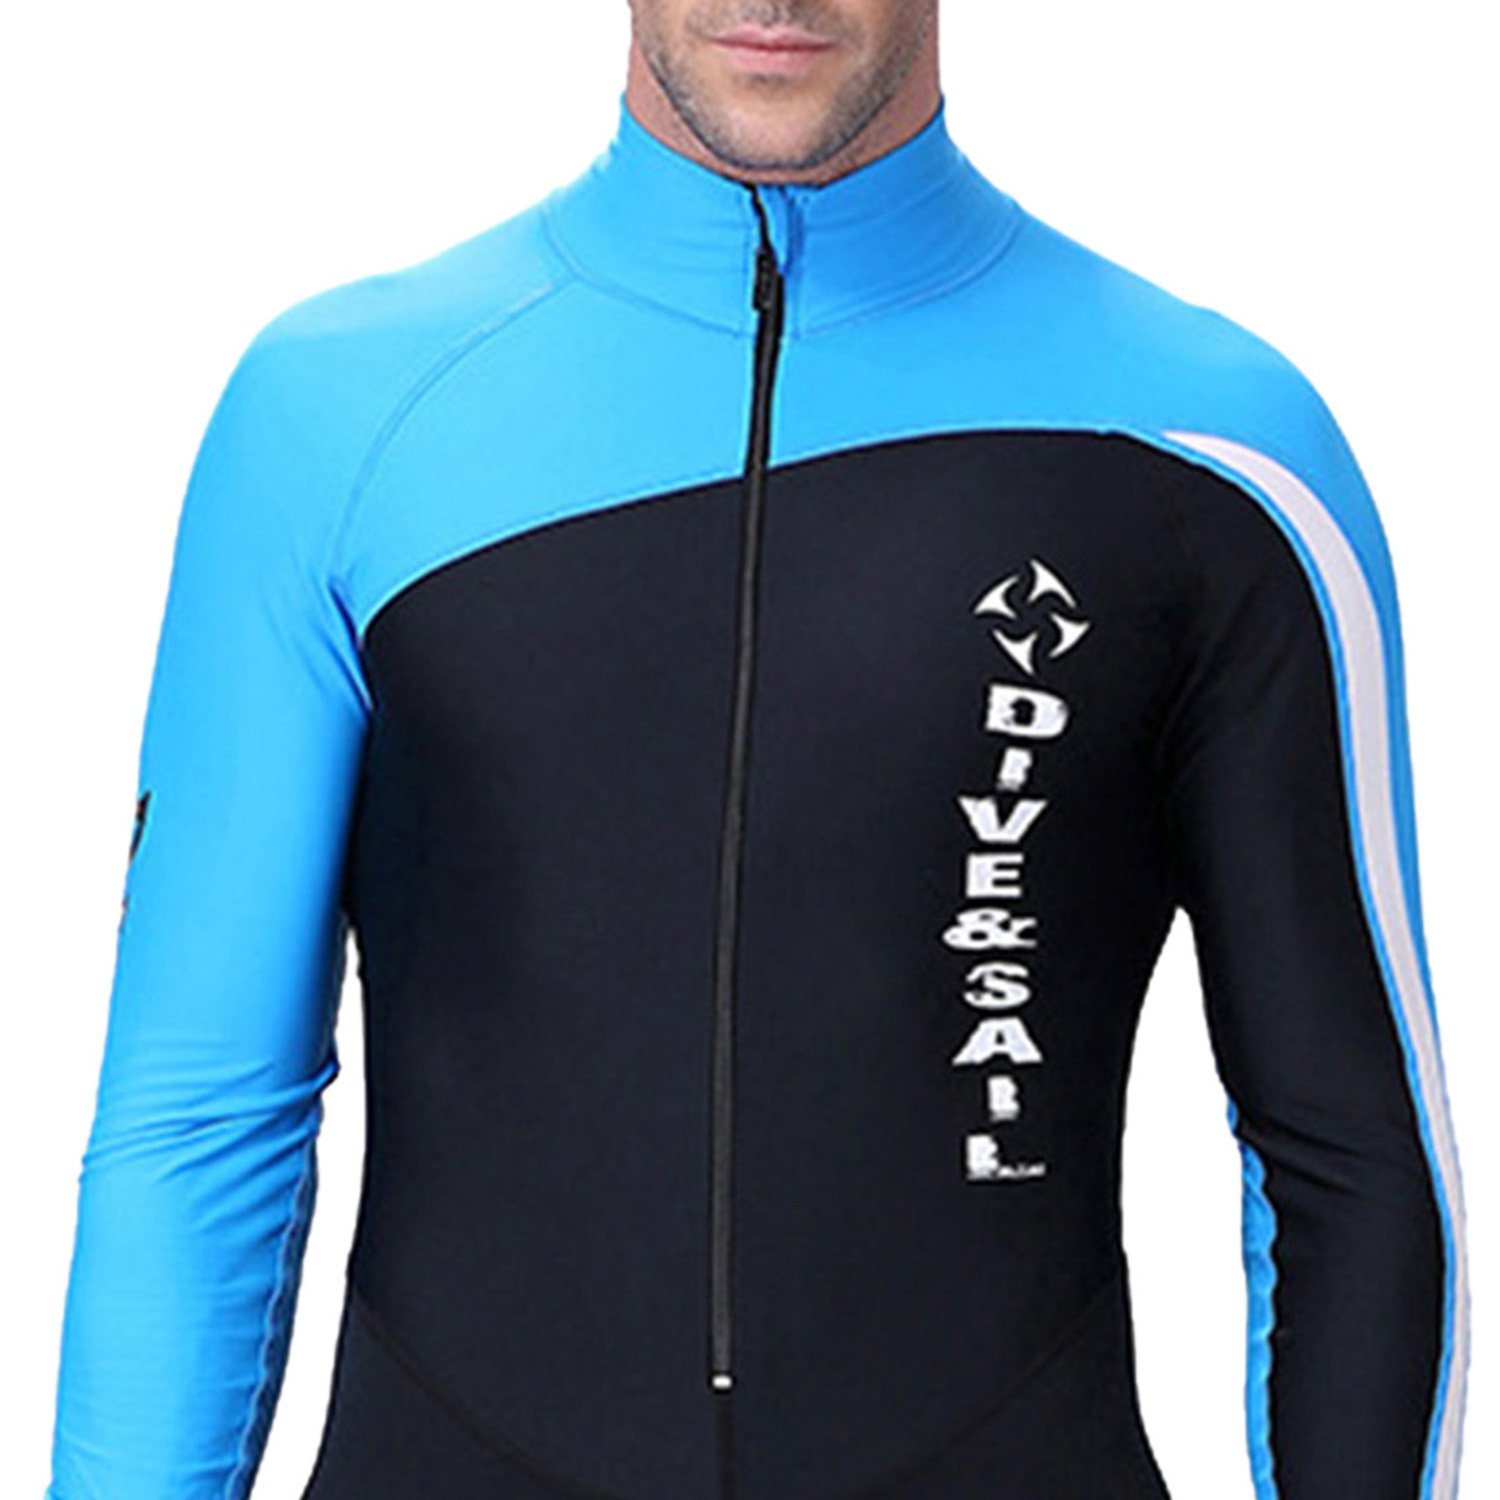 Men's UV Protection Wetsuits Zipper Snorkeling Lycra Skin Diving Surfing Suit Swimwear for Spring Summer Autumn XL - Blue by DIVE & SAIL (Image #2)